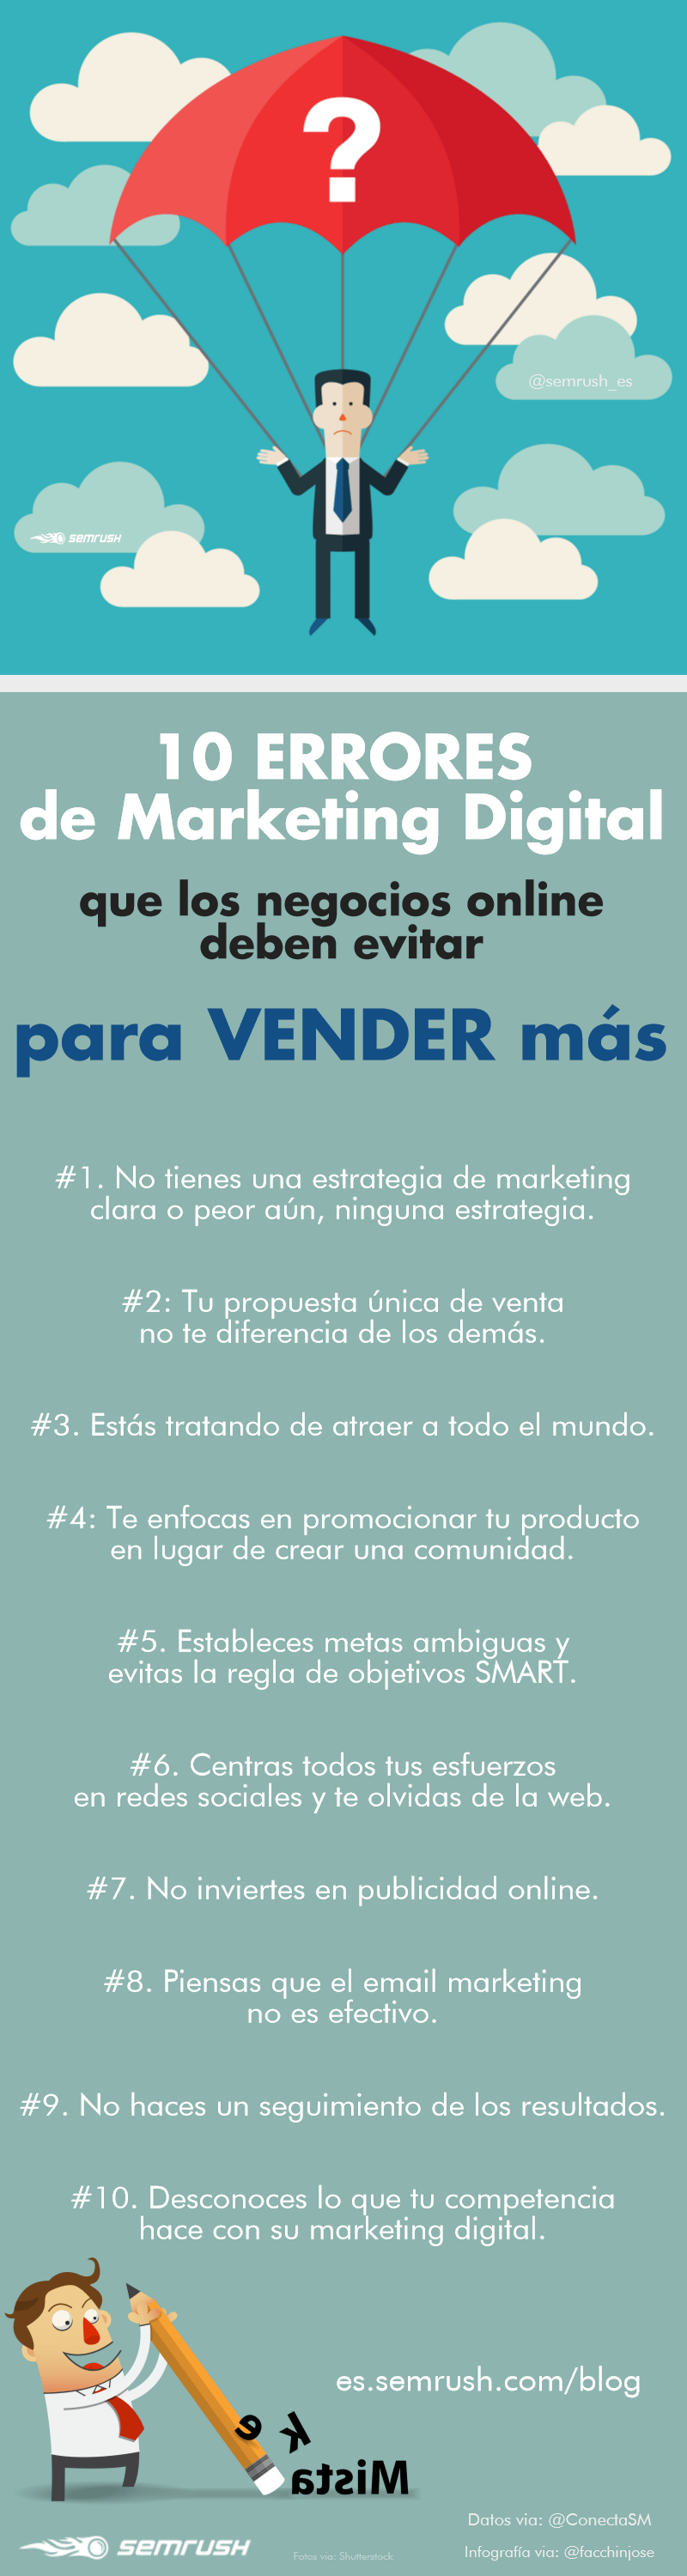 10 Errores de marketing online comunes de los emprendedores